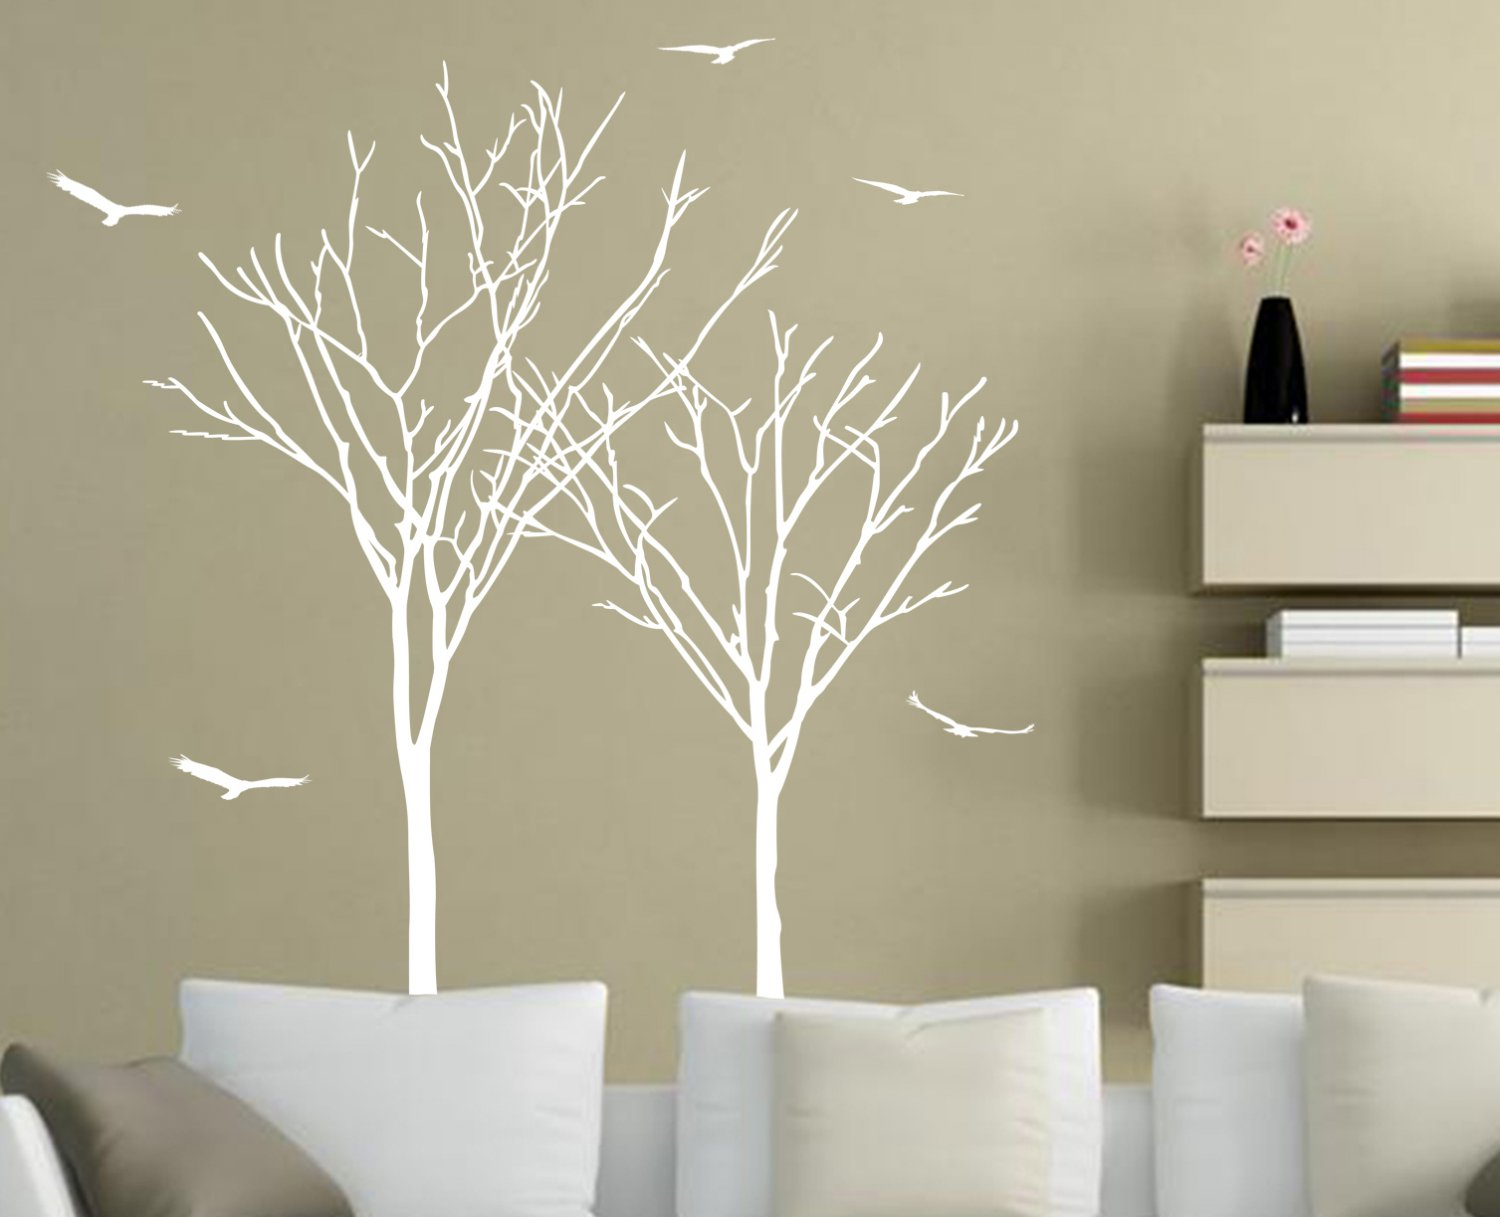 Large Twin Tree Branches & Birds Art Vinyl Wall Sticker, Wall Decal